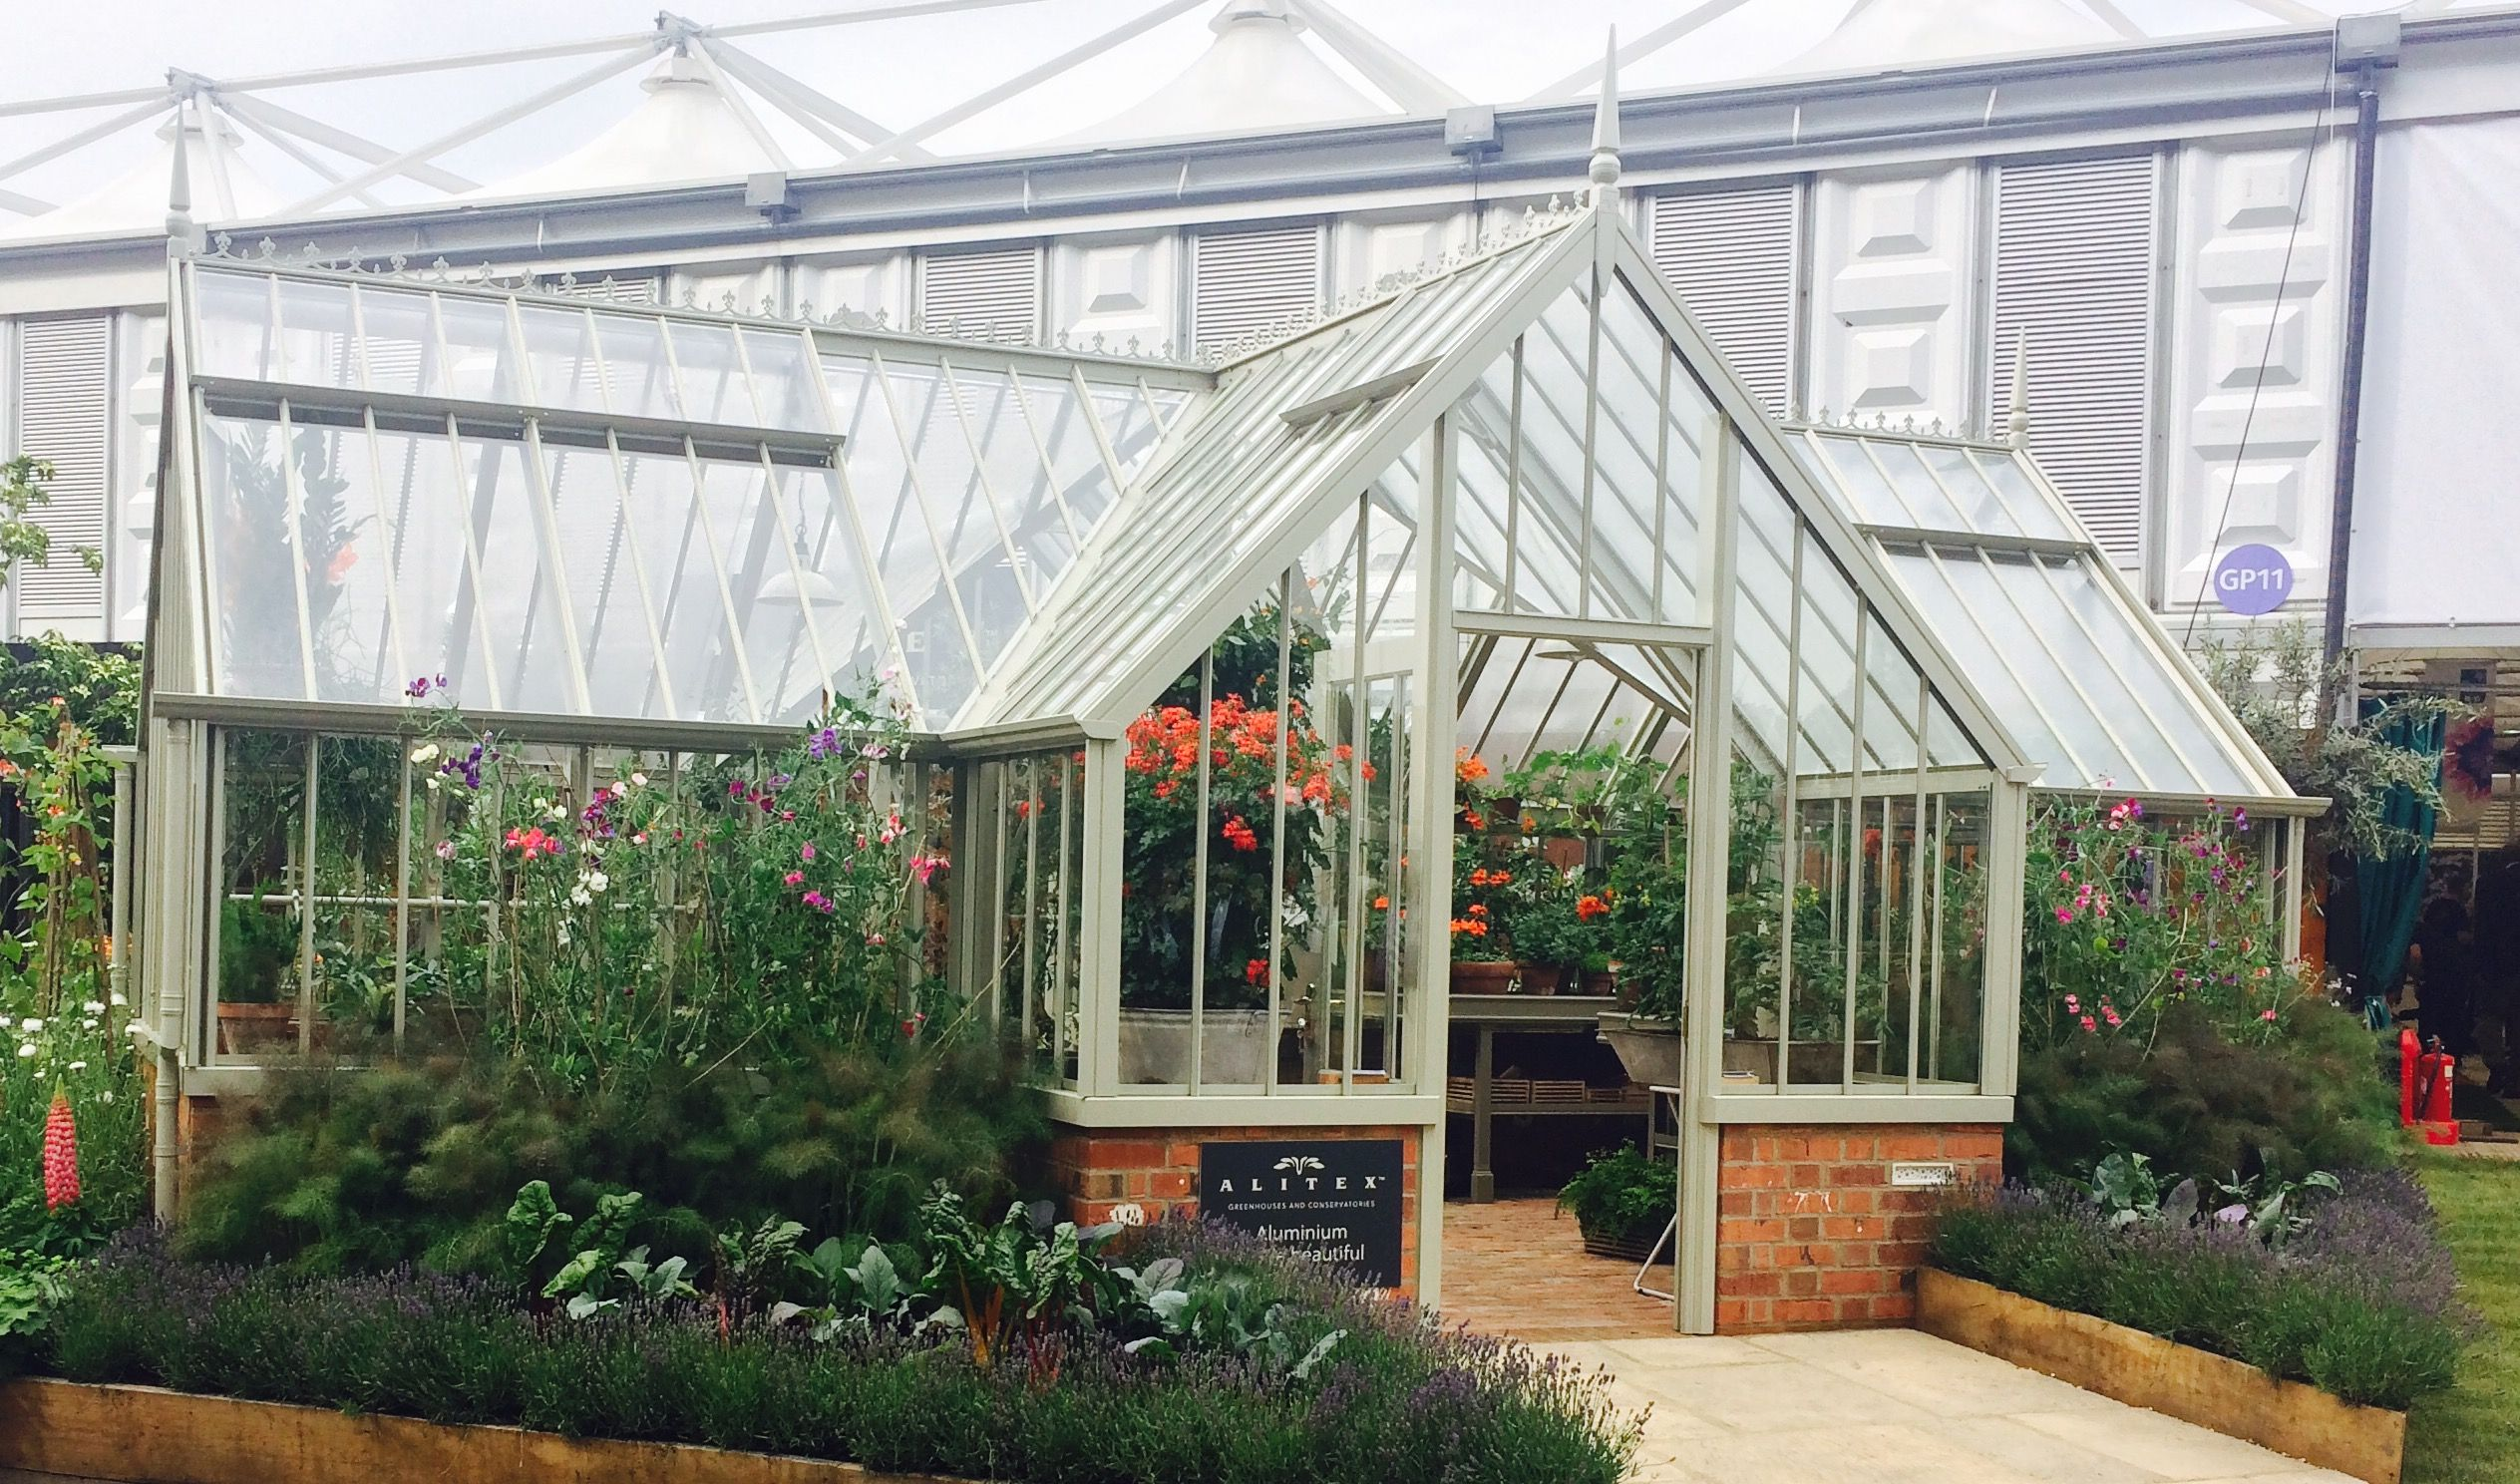 The Ickworth greenhouse at RHS Chelsea Flower Show 2017